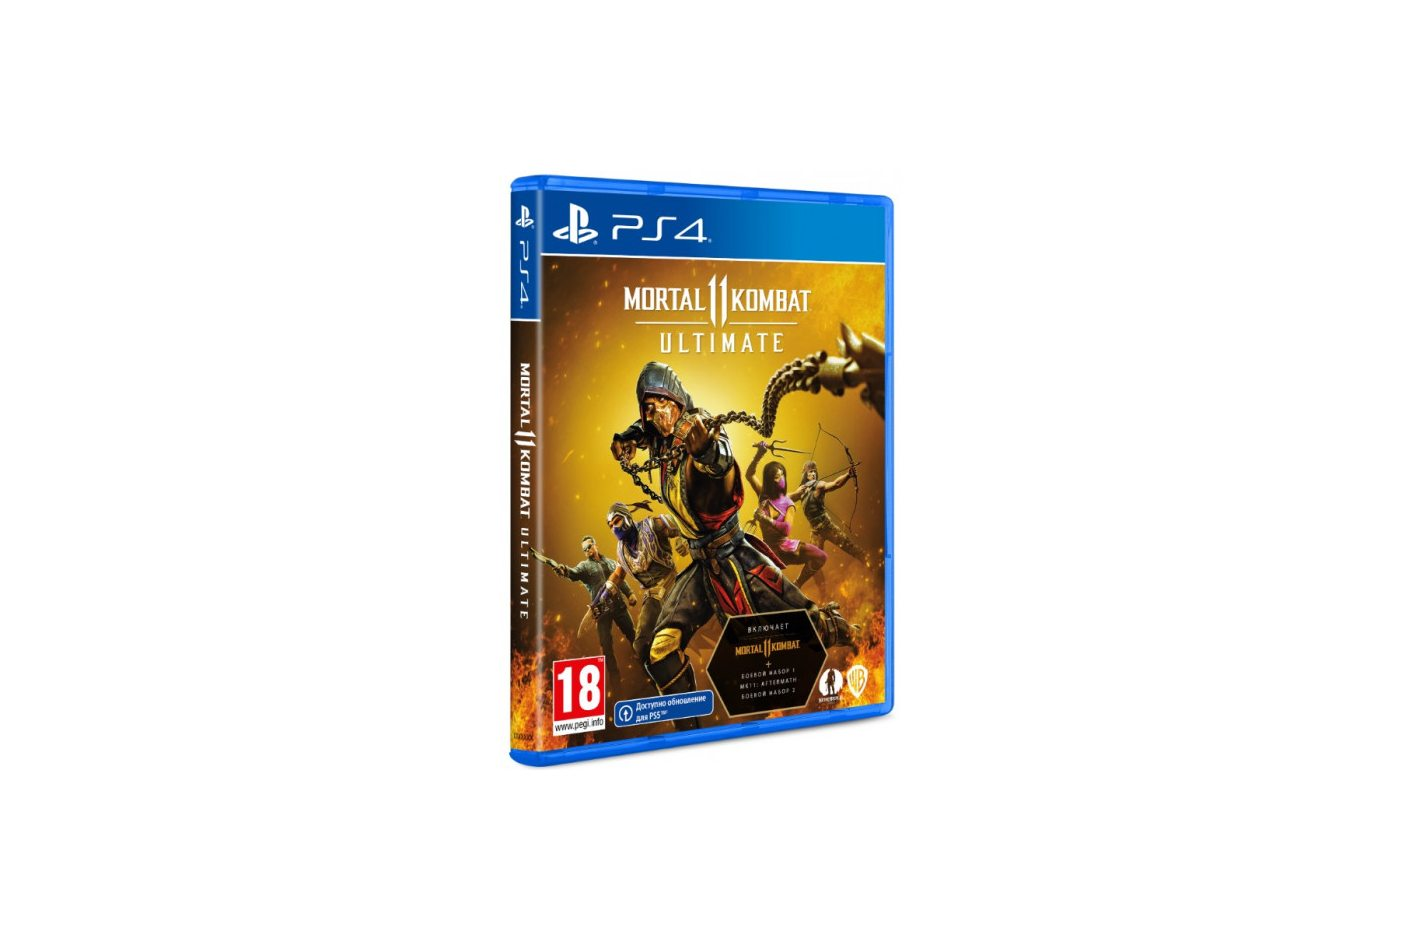 PS 4 Mortal Kombat 11 Ultimate PS 4